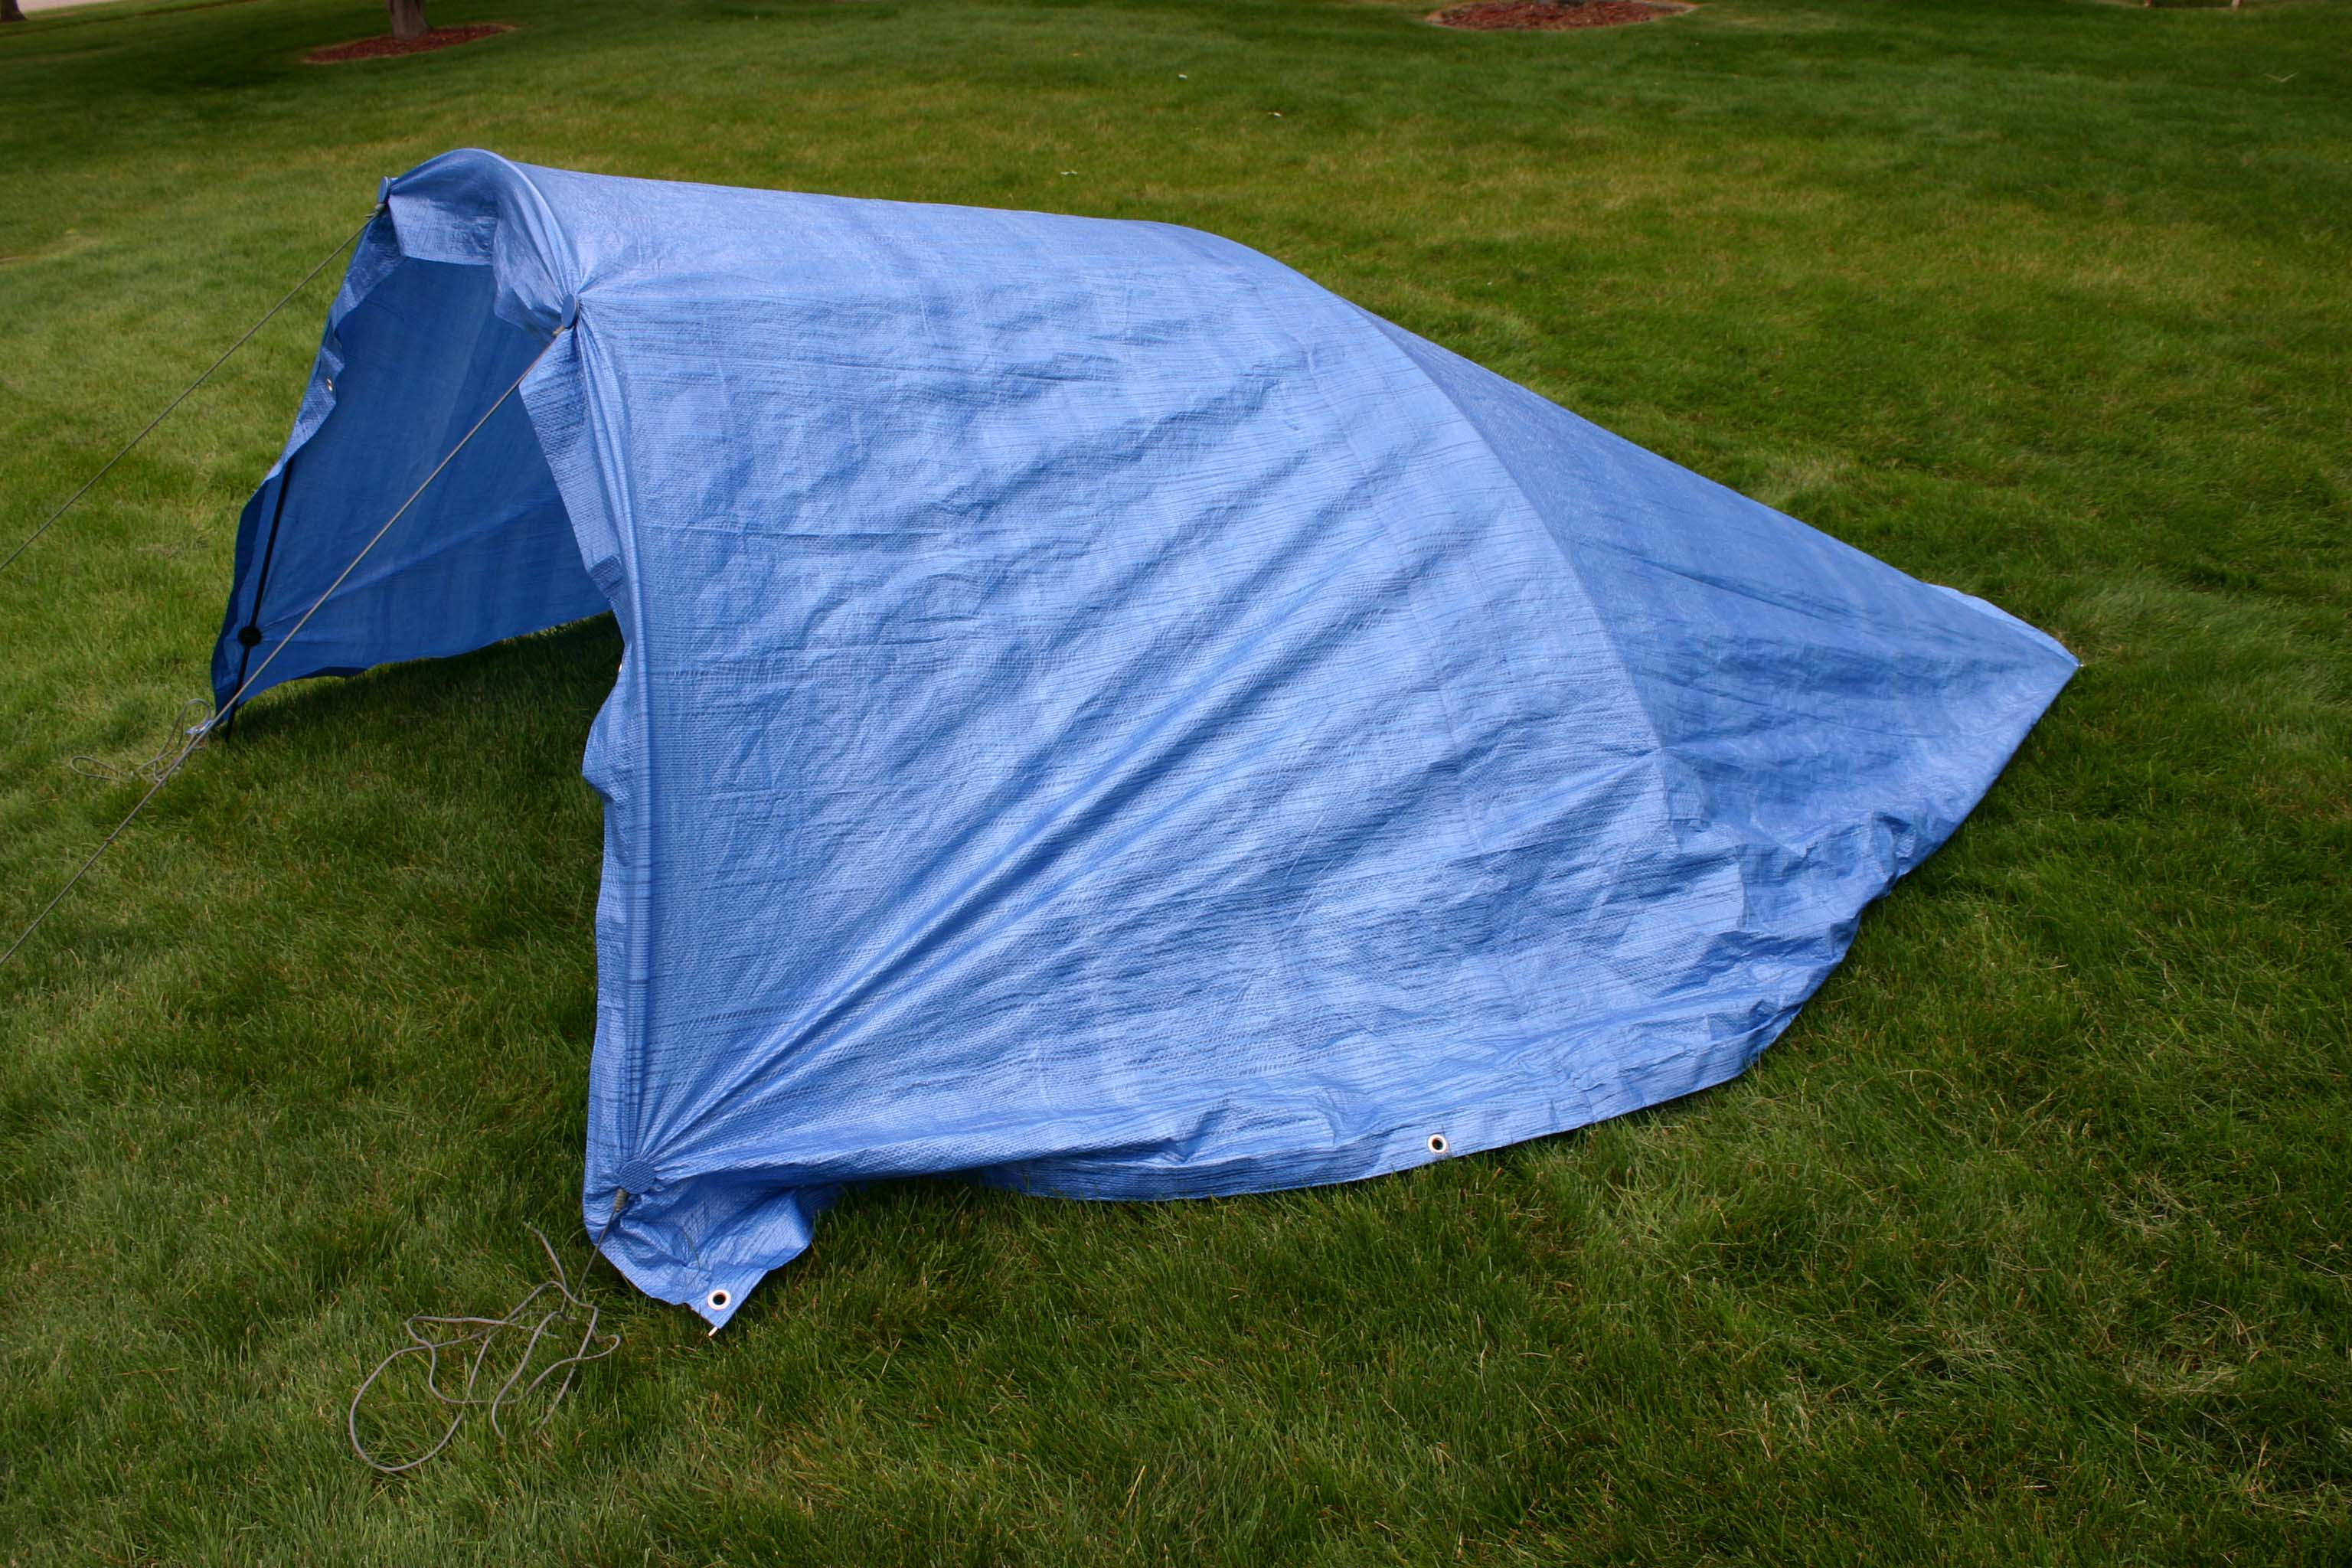 The side hole of the hub on the Tarp Buddy is designed to allow aluminum shock corded tent poles up to 3/8 inch diameter to be inserted for creating ... & Uses (Photos) - Tarp Buddy